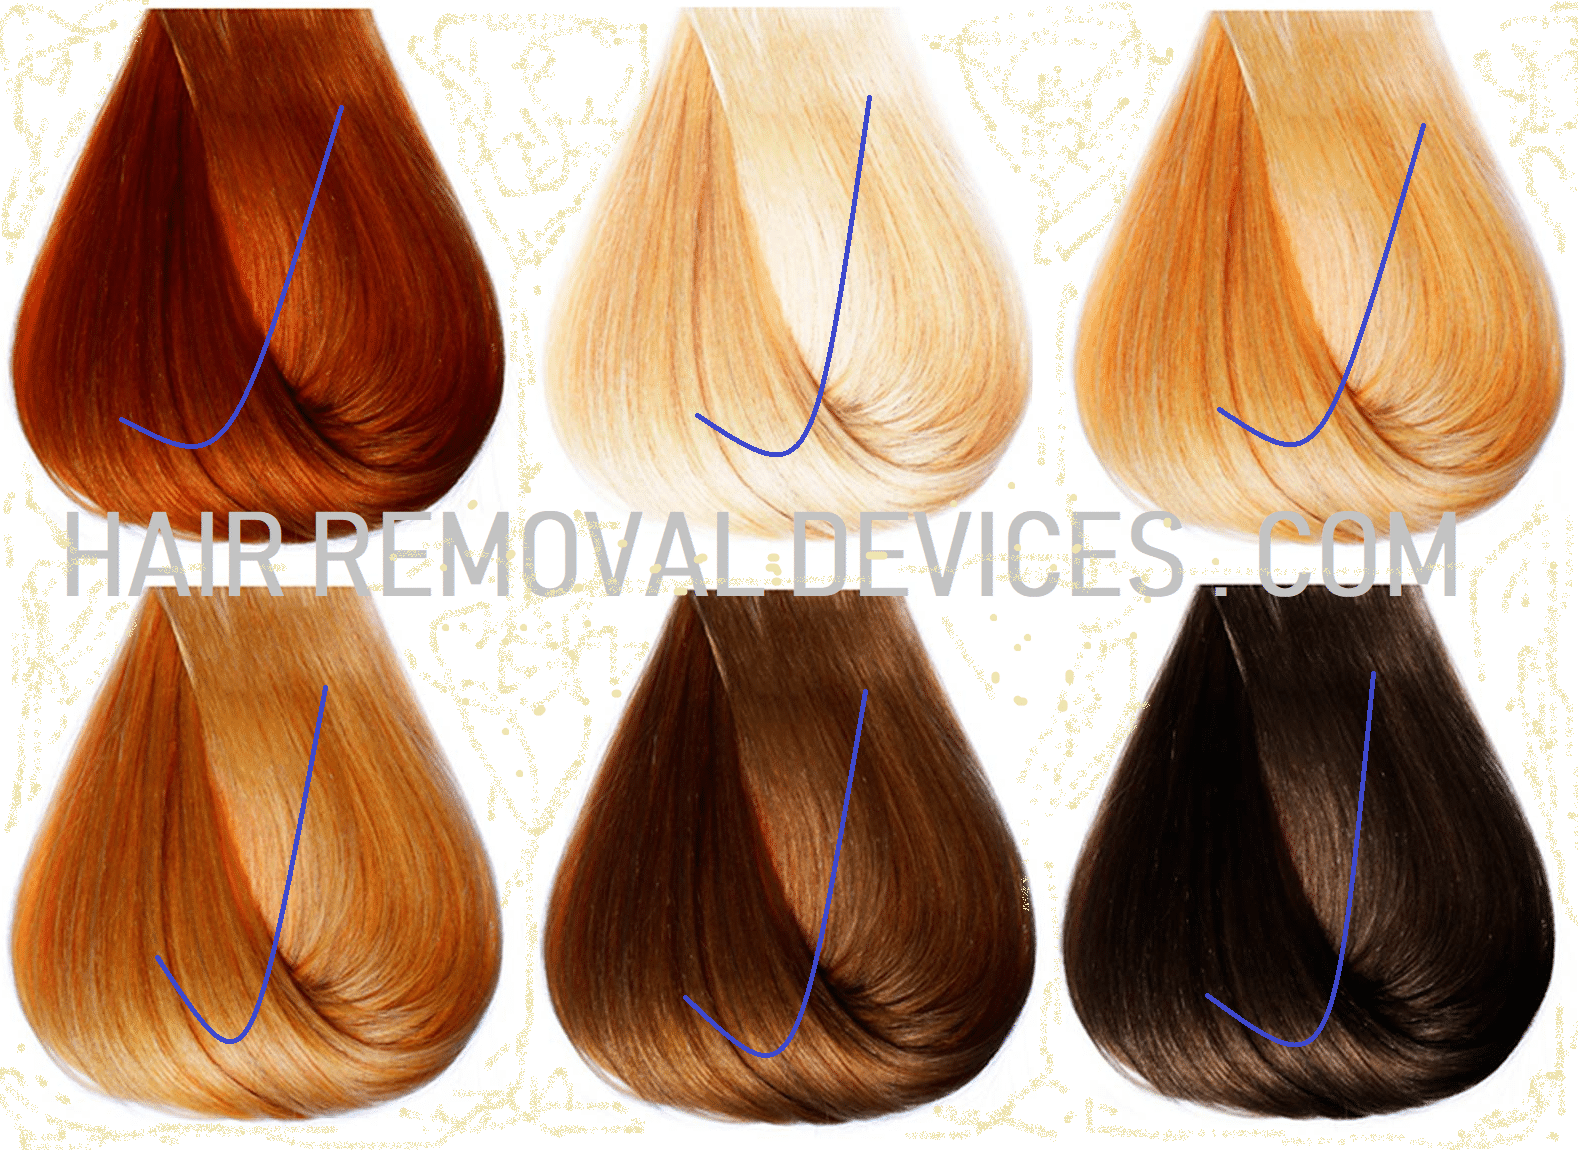 Hair colors suitable for treatment using Iluminage Touch